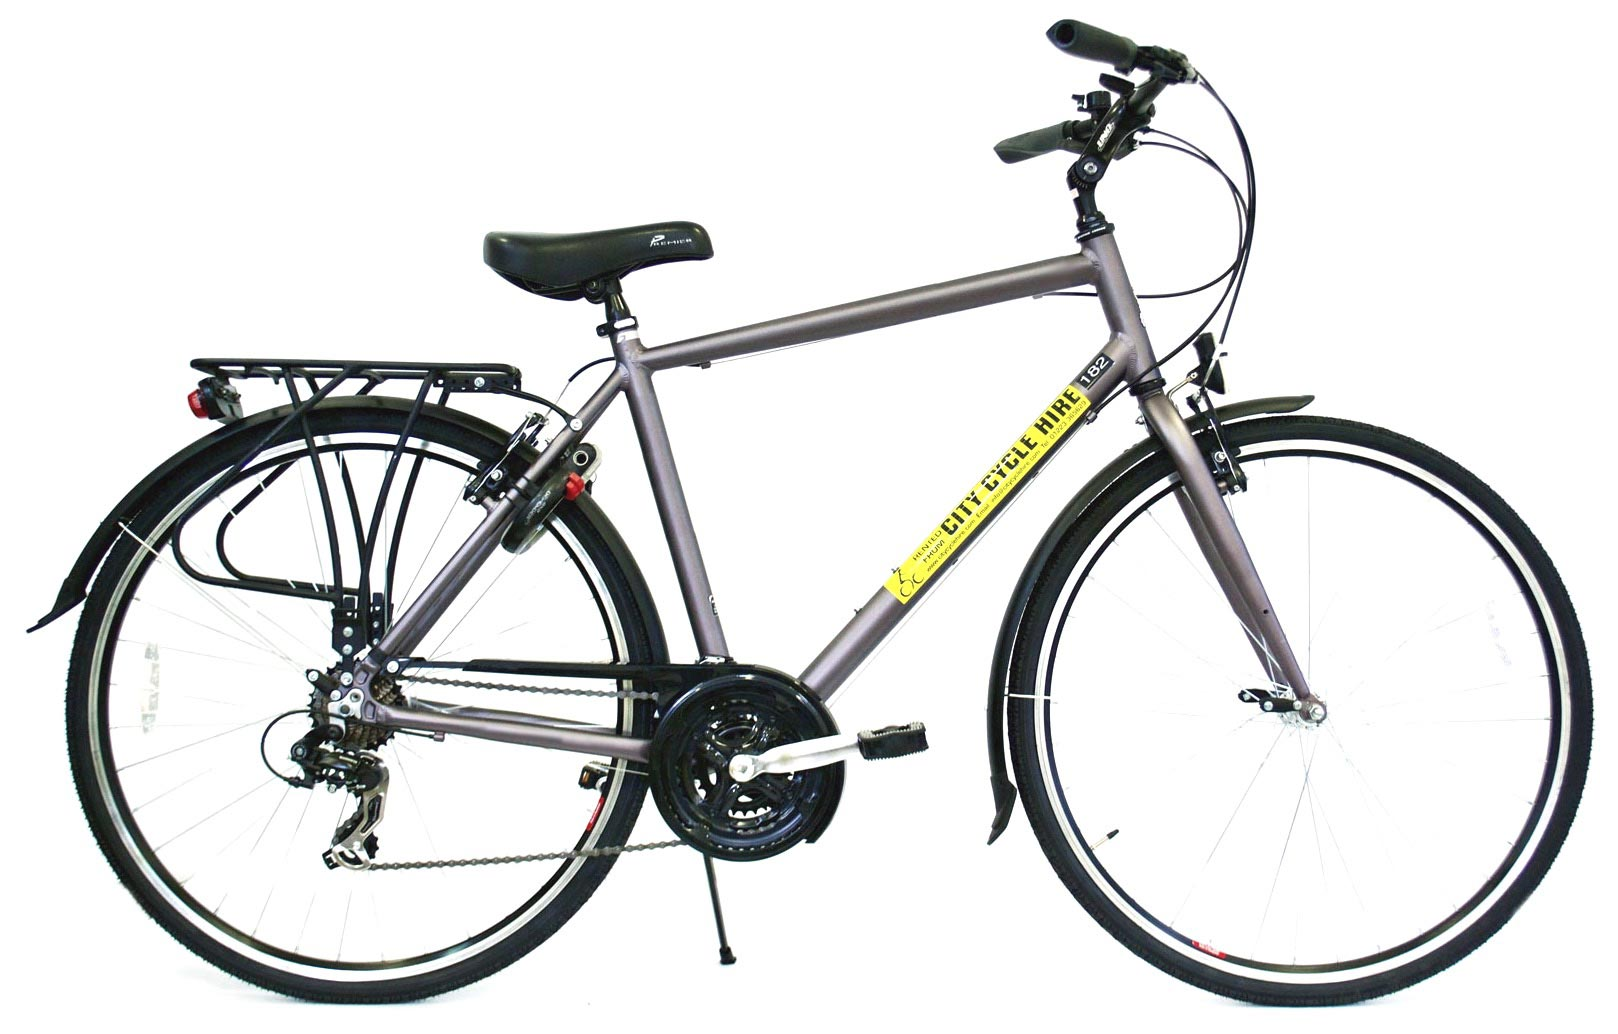 City Cycle Hire - Bicycle rental, sales and repair for Cambridge